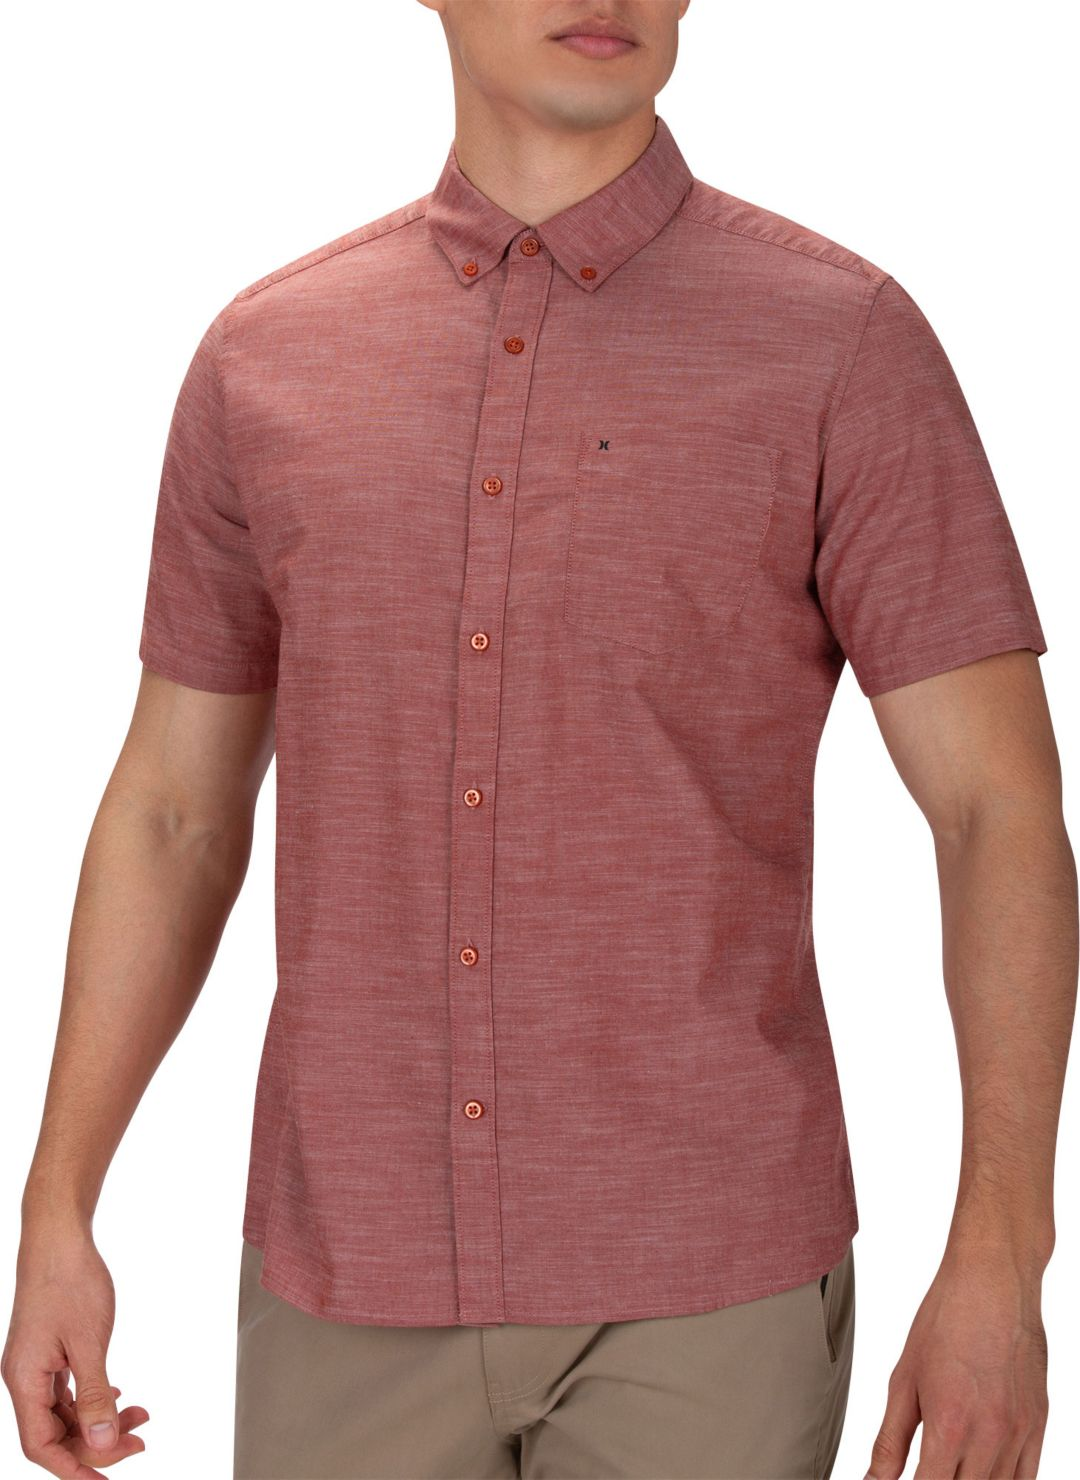 7889381eaccb56 Hurley Men's One & Only 2.0 Woven Short Sleeve Shirt. noImageFound.  Previous. 1